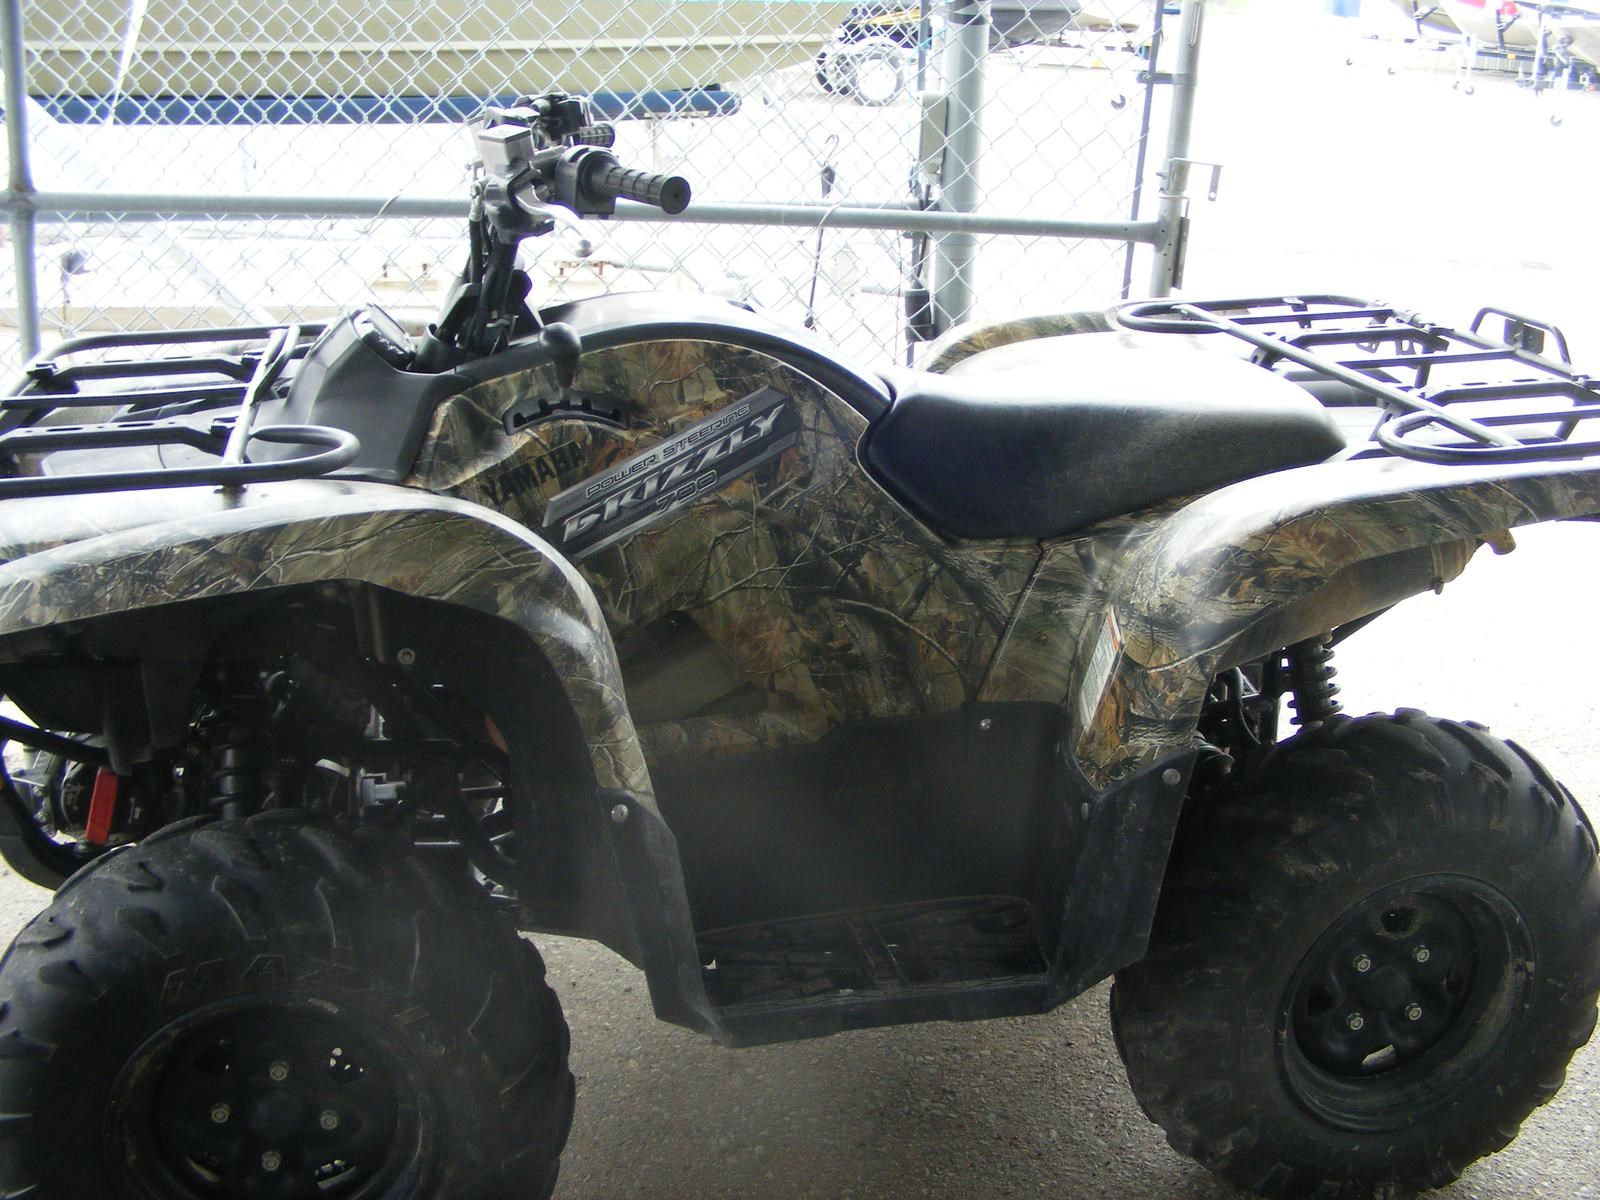 Yamaha grizzly 700 fi eps realtree ap hd camouflage for Yamaha grizzly 700 for sale